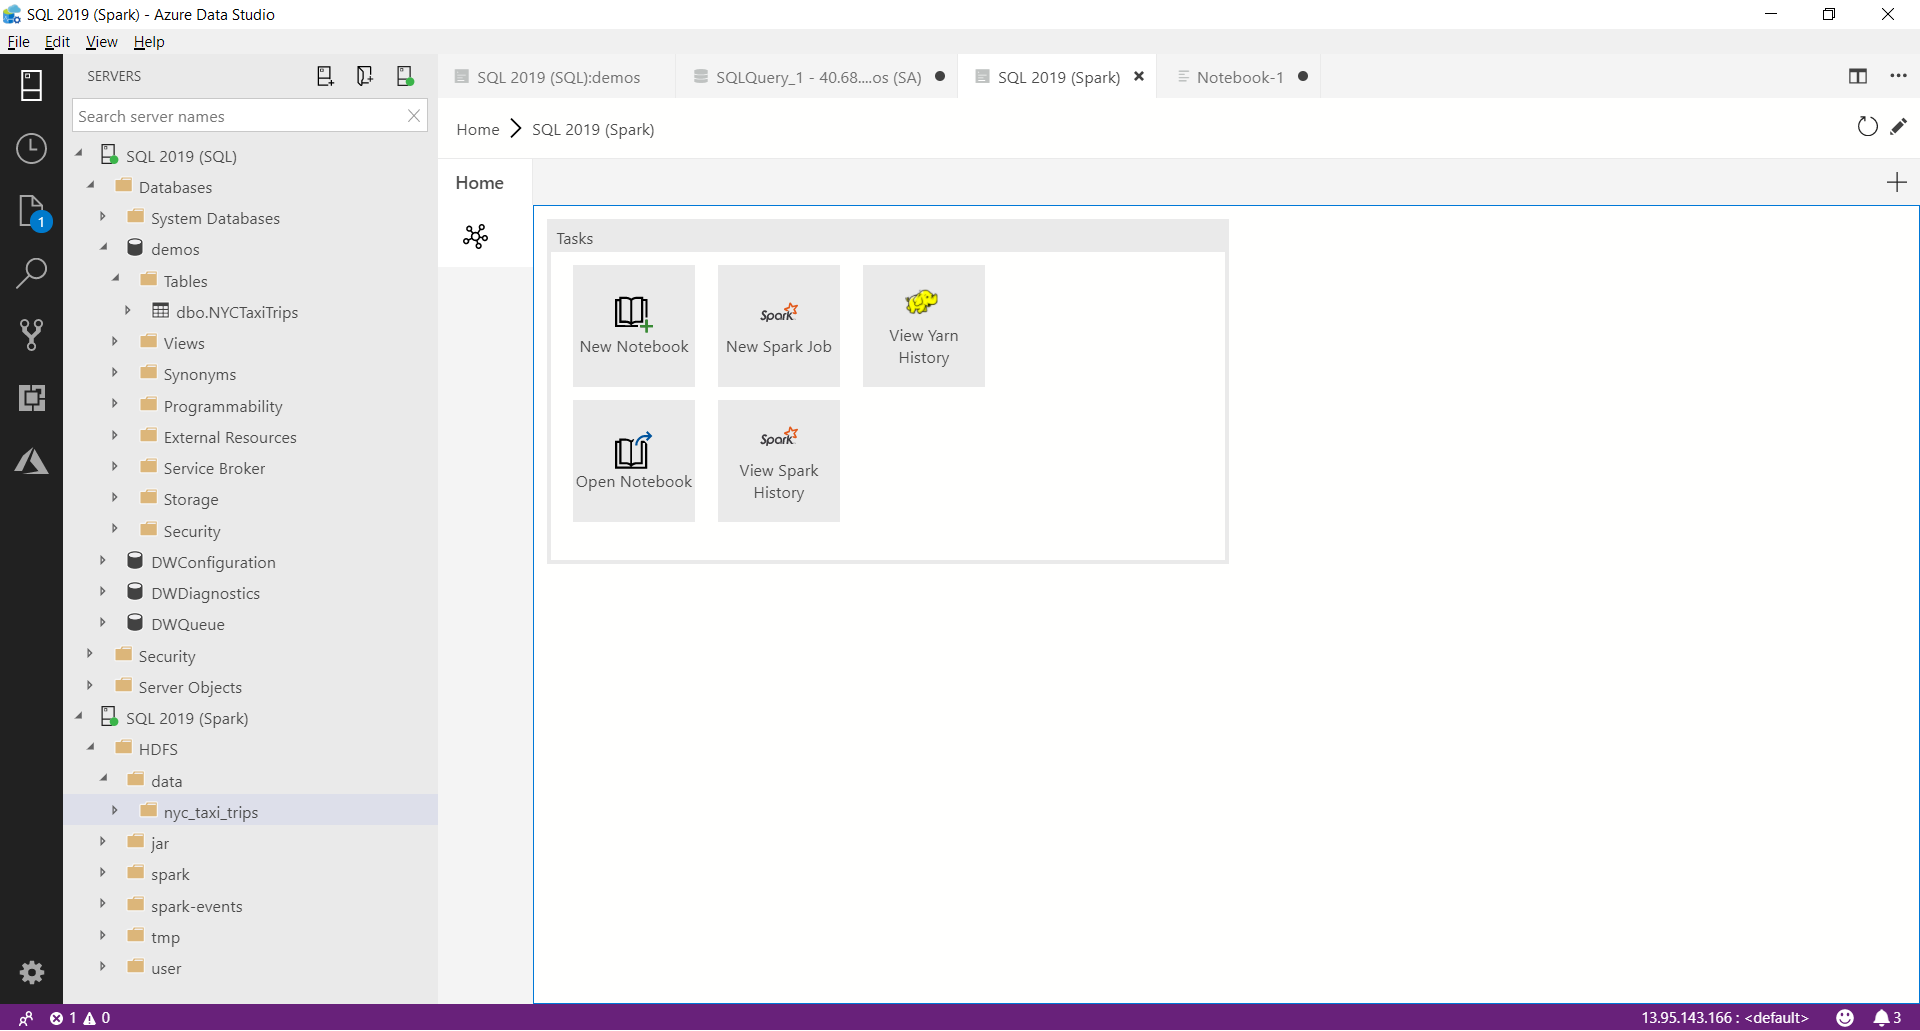 Azure Data Studio with SQL Server 2019 extension